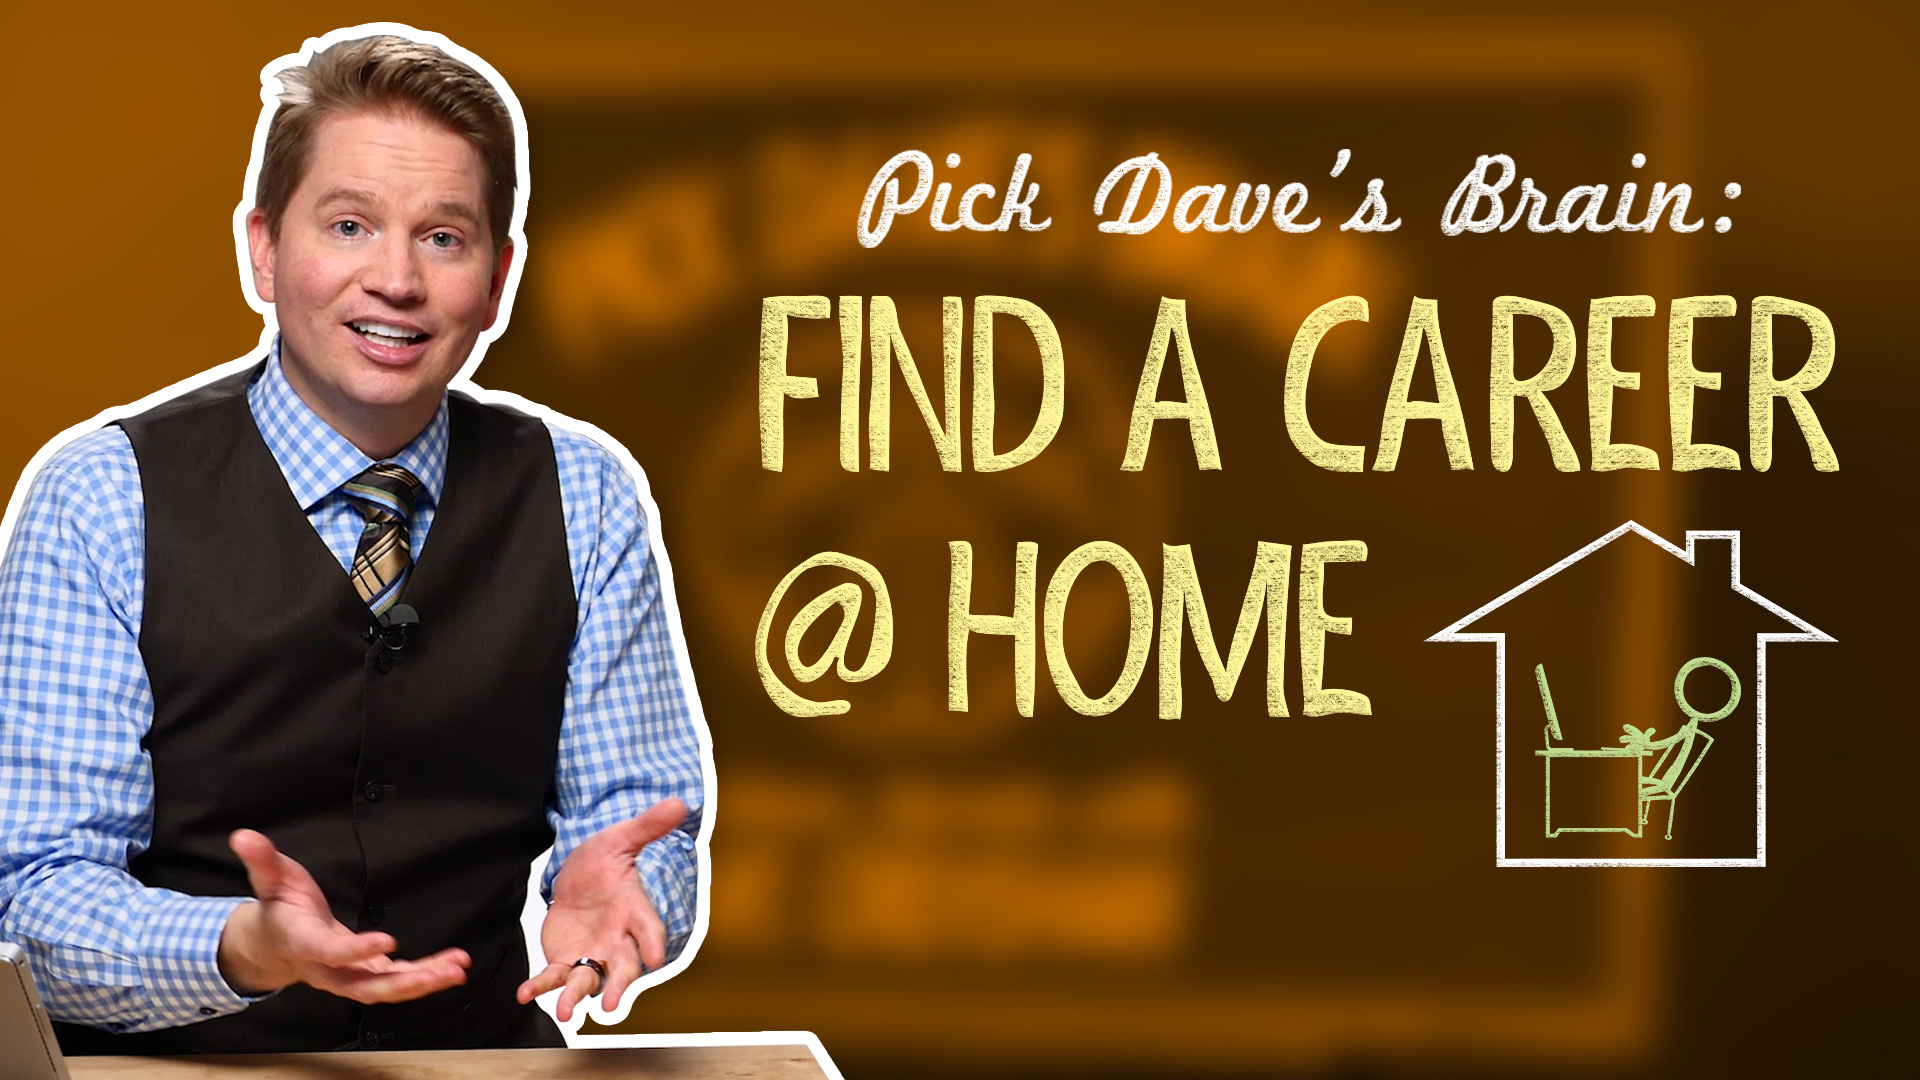 Hate commuting? Here's how to find a remote career – Pick Dave's Brain